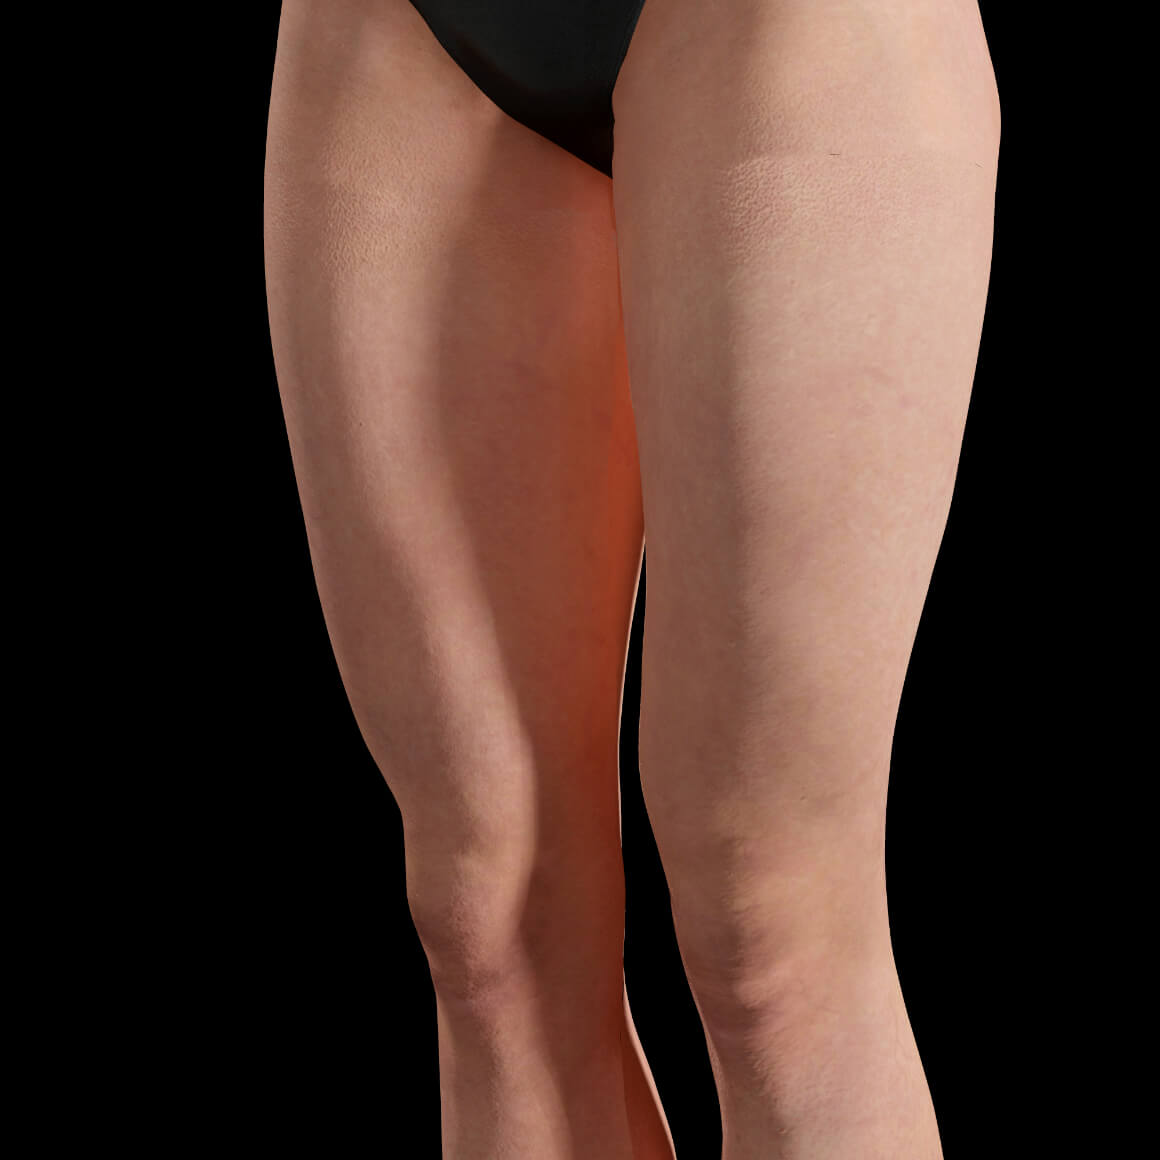 Angled Clinique Chloé female patient after Sculptra injections on the thighs for body skin tightening